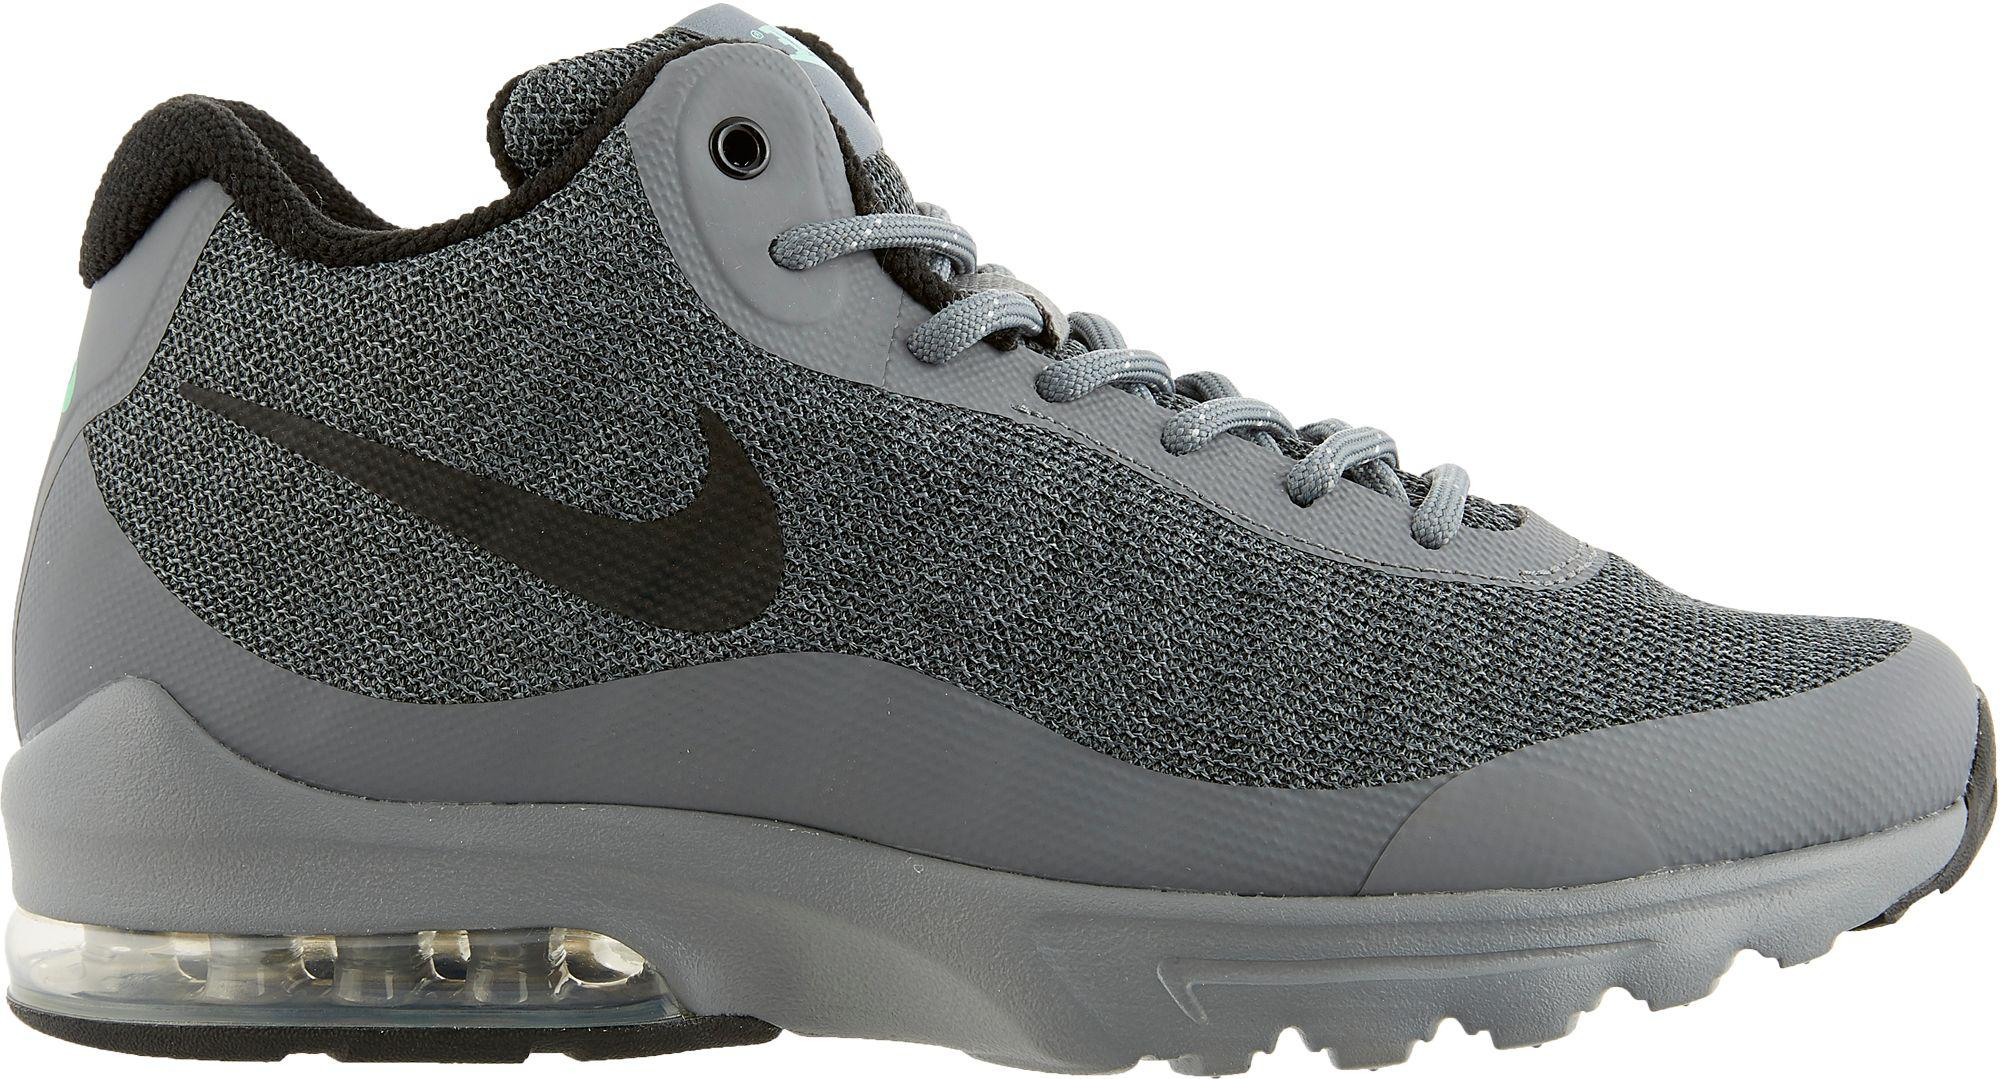 7008c933cc Nike Air Max Invigor Mid Shoes in Gray for Men - Lyst